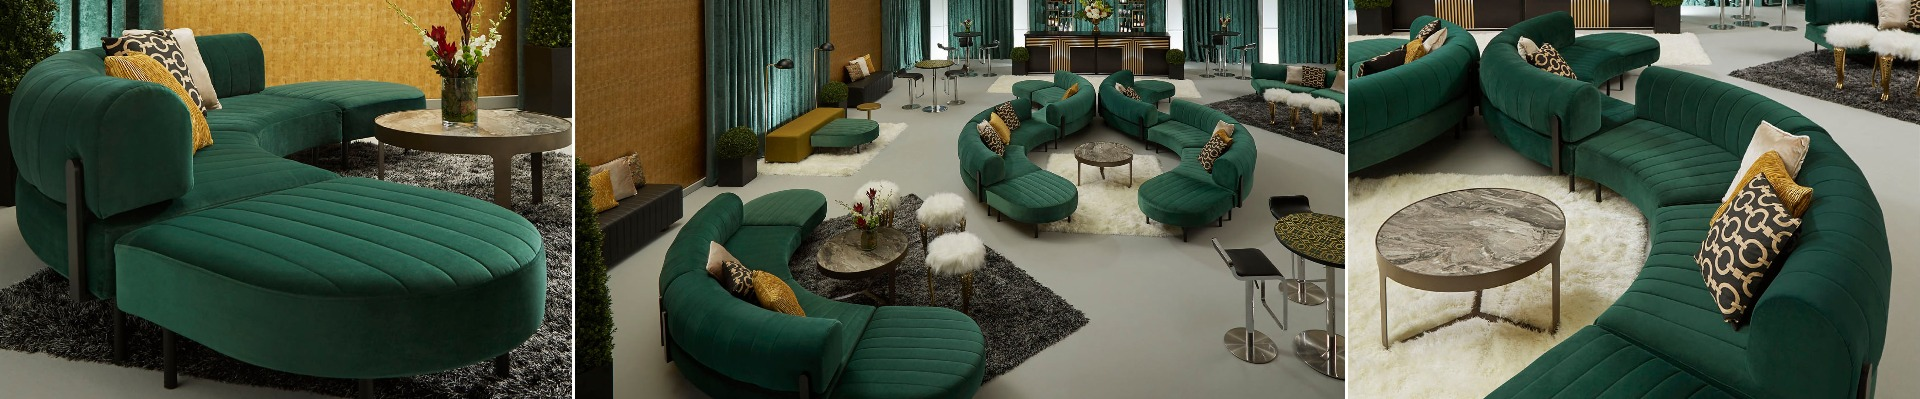 event with emerald green soft seating